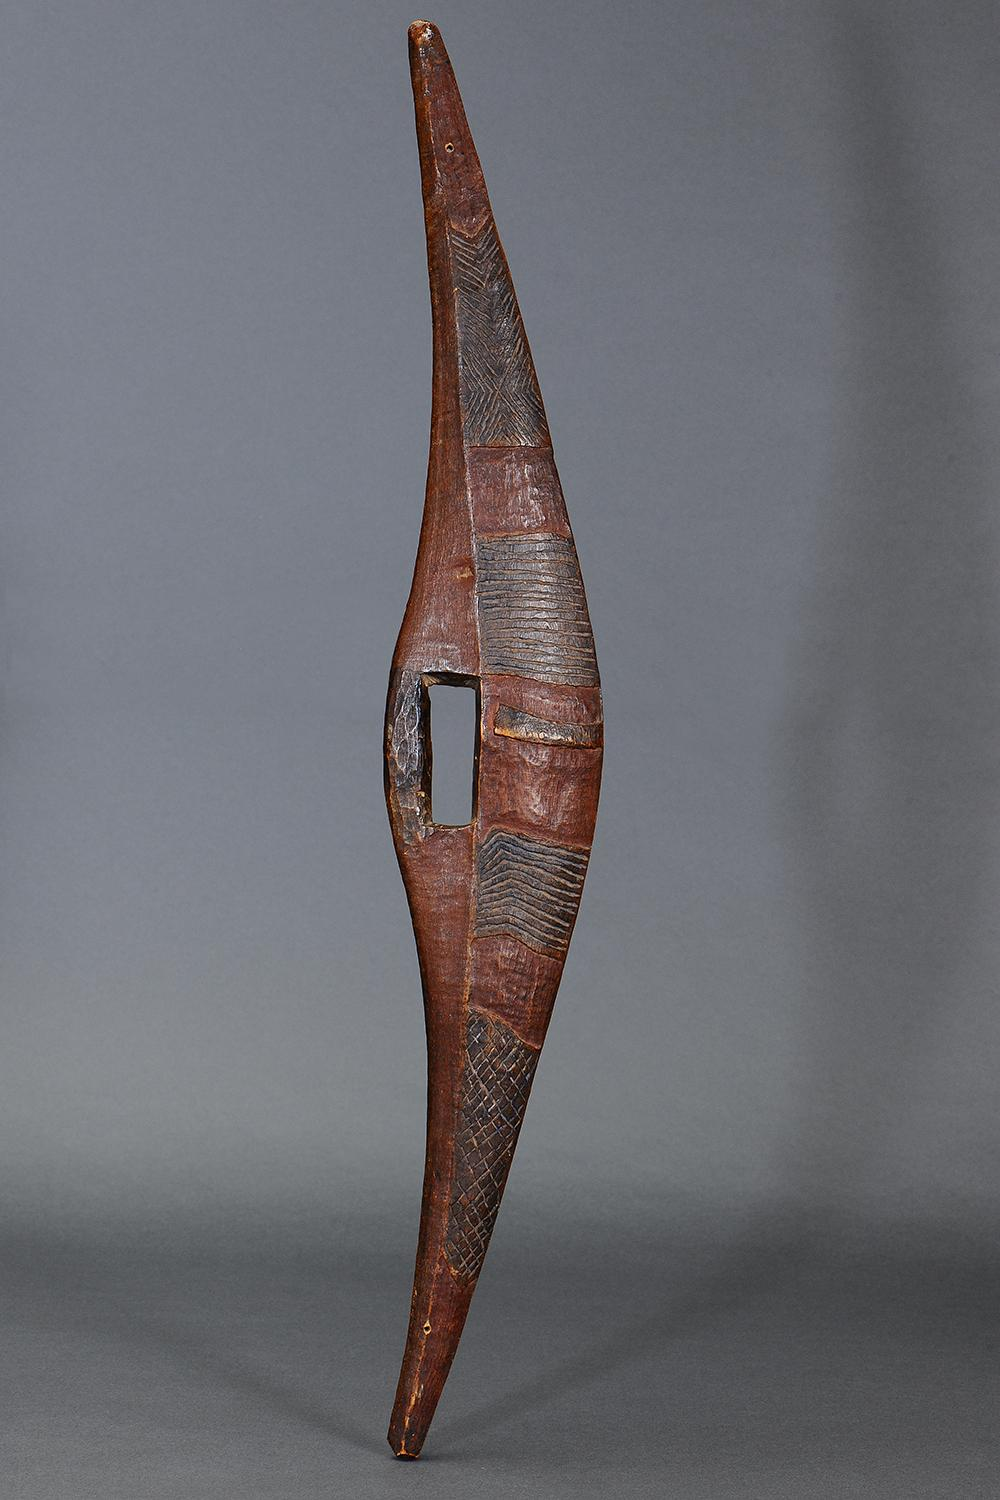 SUPERB EARLY INCISED PARRYING SHIELD, DARLING RIVER REGION, NEW SOUTH WALES